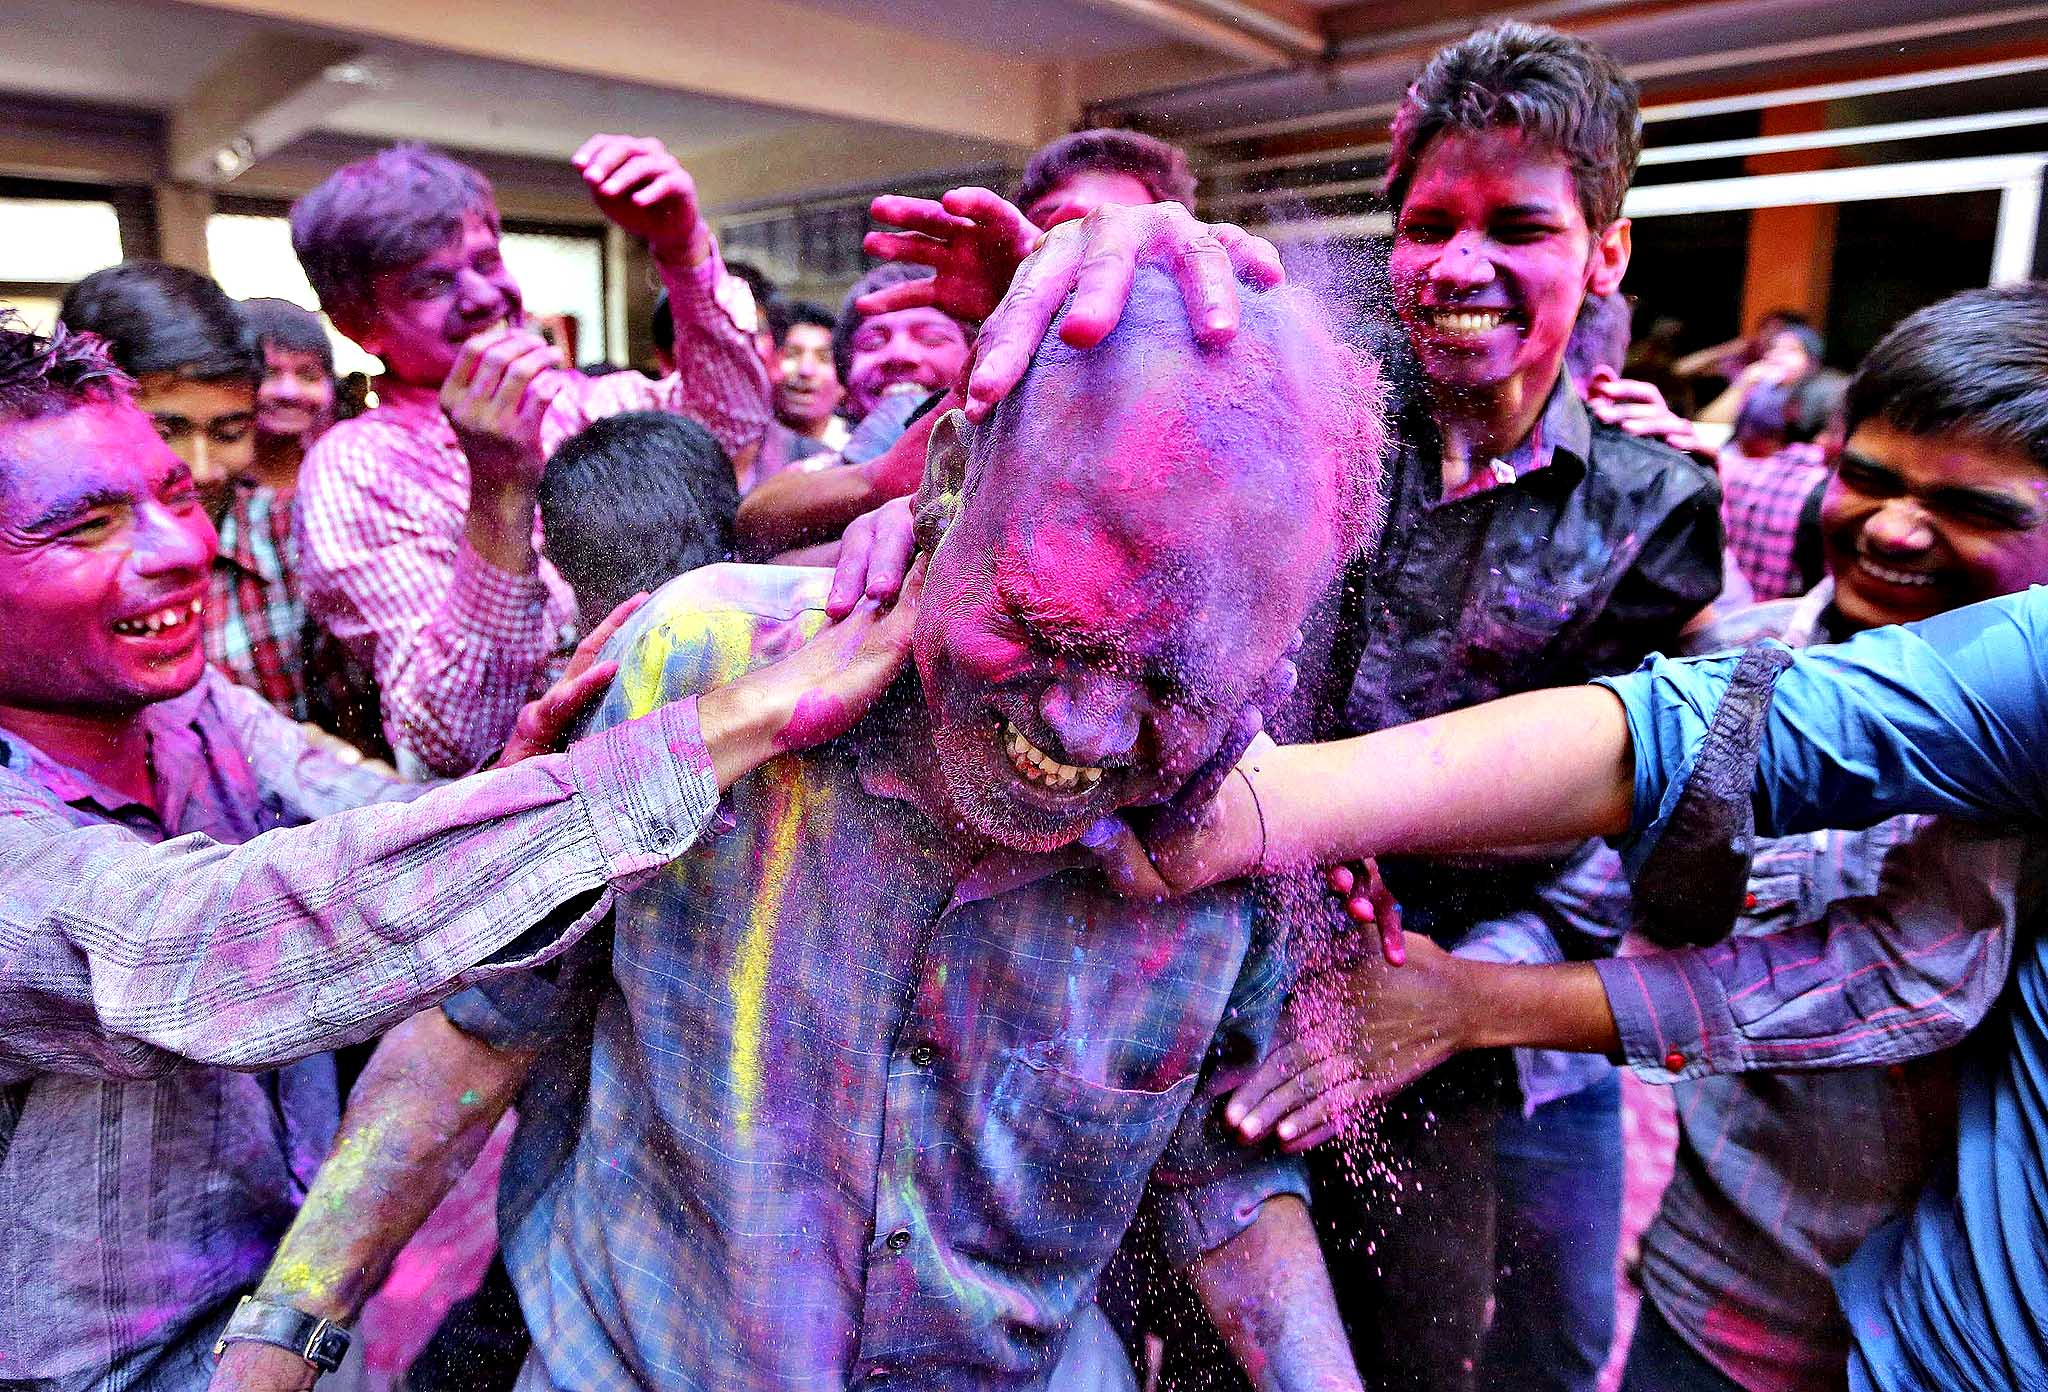 Students apply coloured power onto their teacher's head during Holi celebrations at a school in the western Indian city of Ahmedabad March 14, 2014. Holi, also known as the Festival of Colours, heralds the beginning of spring and is celebrated all over India.